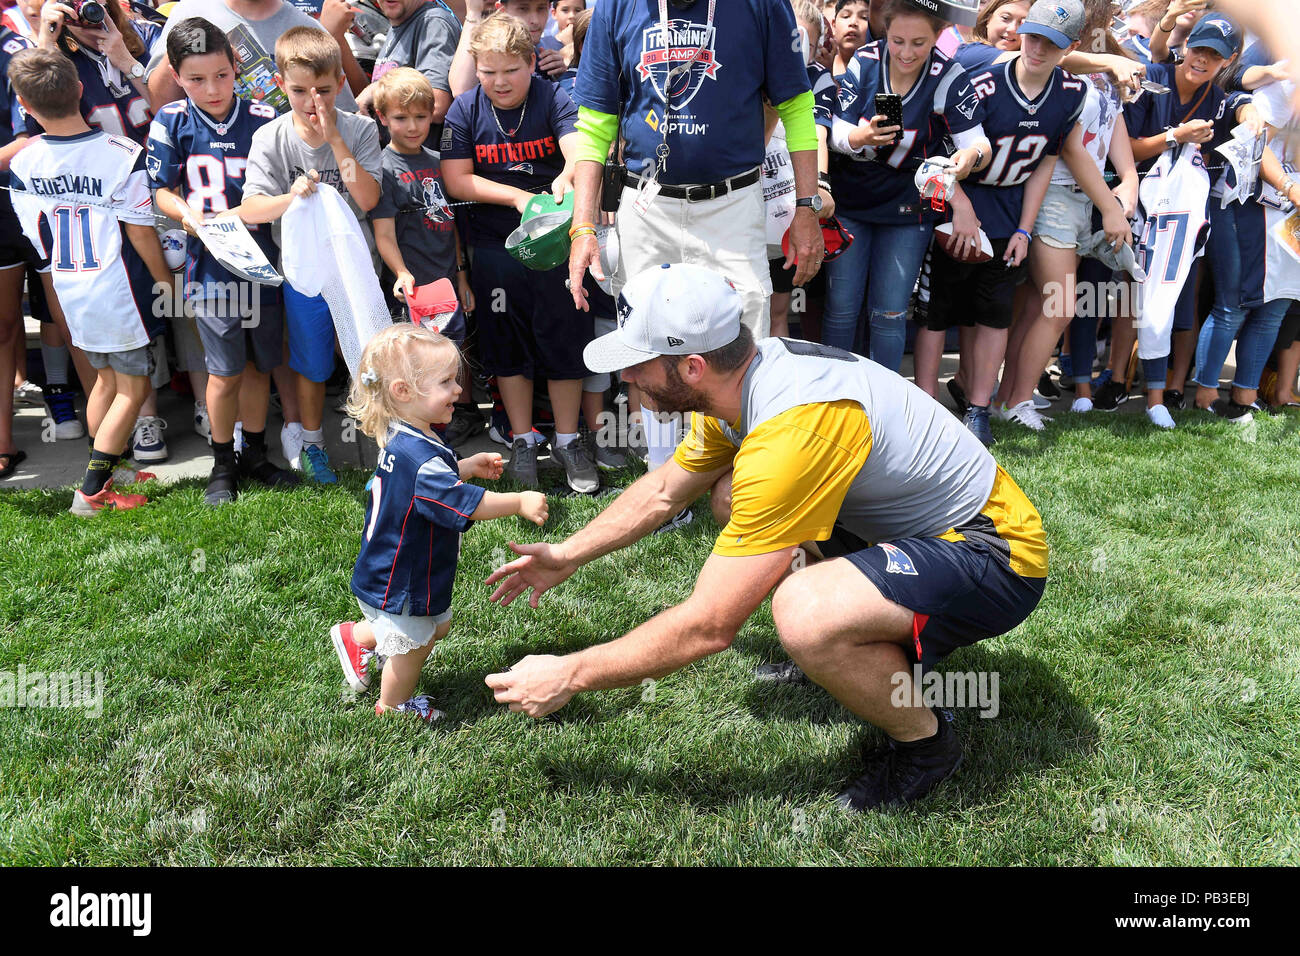 Foxborough, Massachusetts, USA. 26th July, 2018. New England Patriots wide receiver Julian Edelman (11) is greeted by his 20 month old daughter Lily Edelman at the New England Patriots training camp held on the practice fields at Gillette Stadium, in Foxborough, Massachusetts. Eric Canha/CSM/Alamy Live News - Stock Image